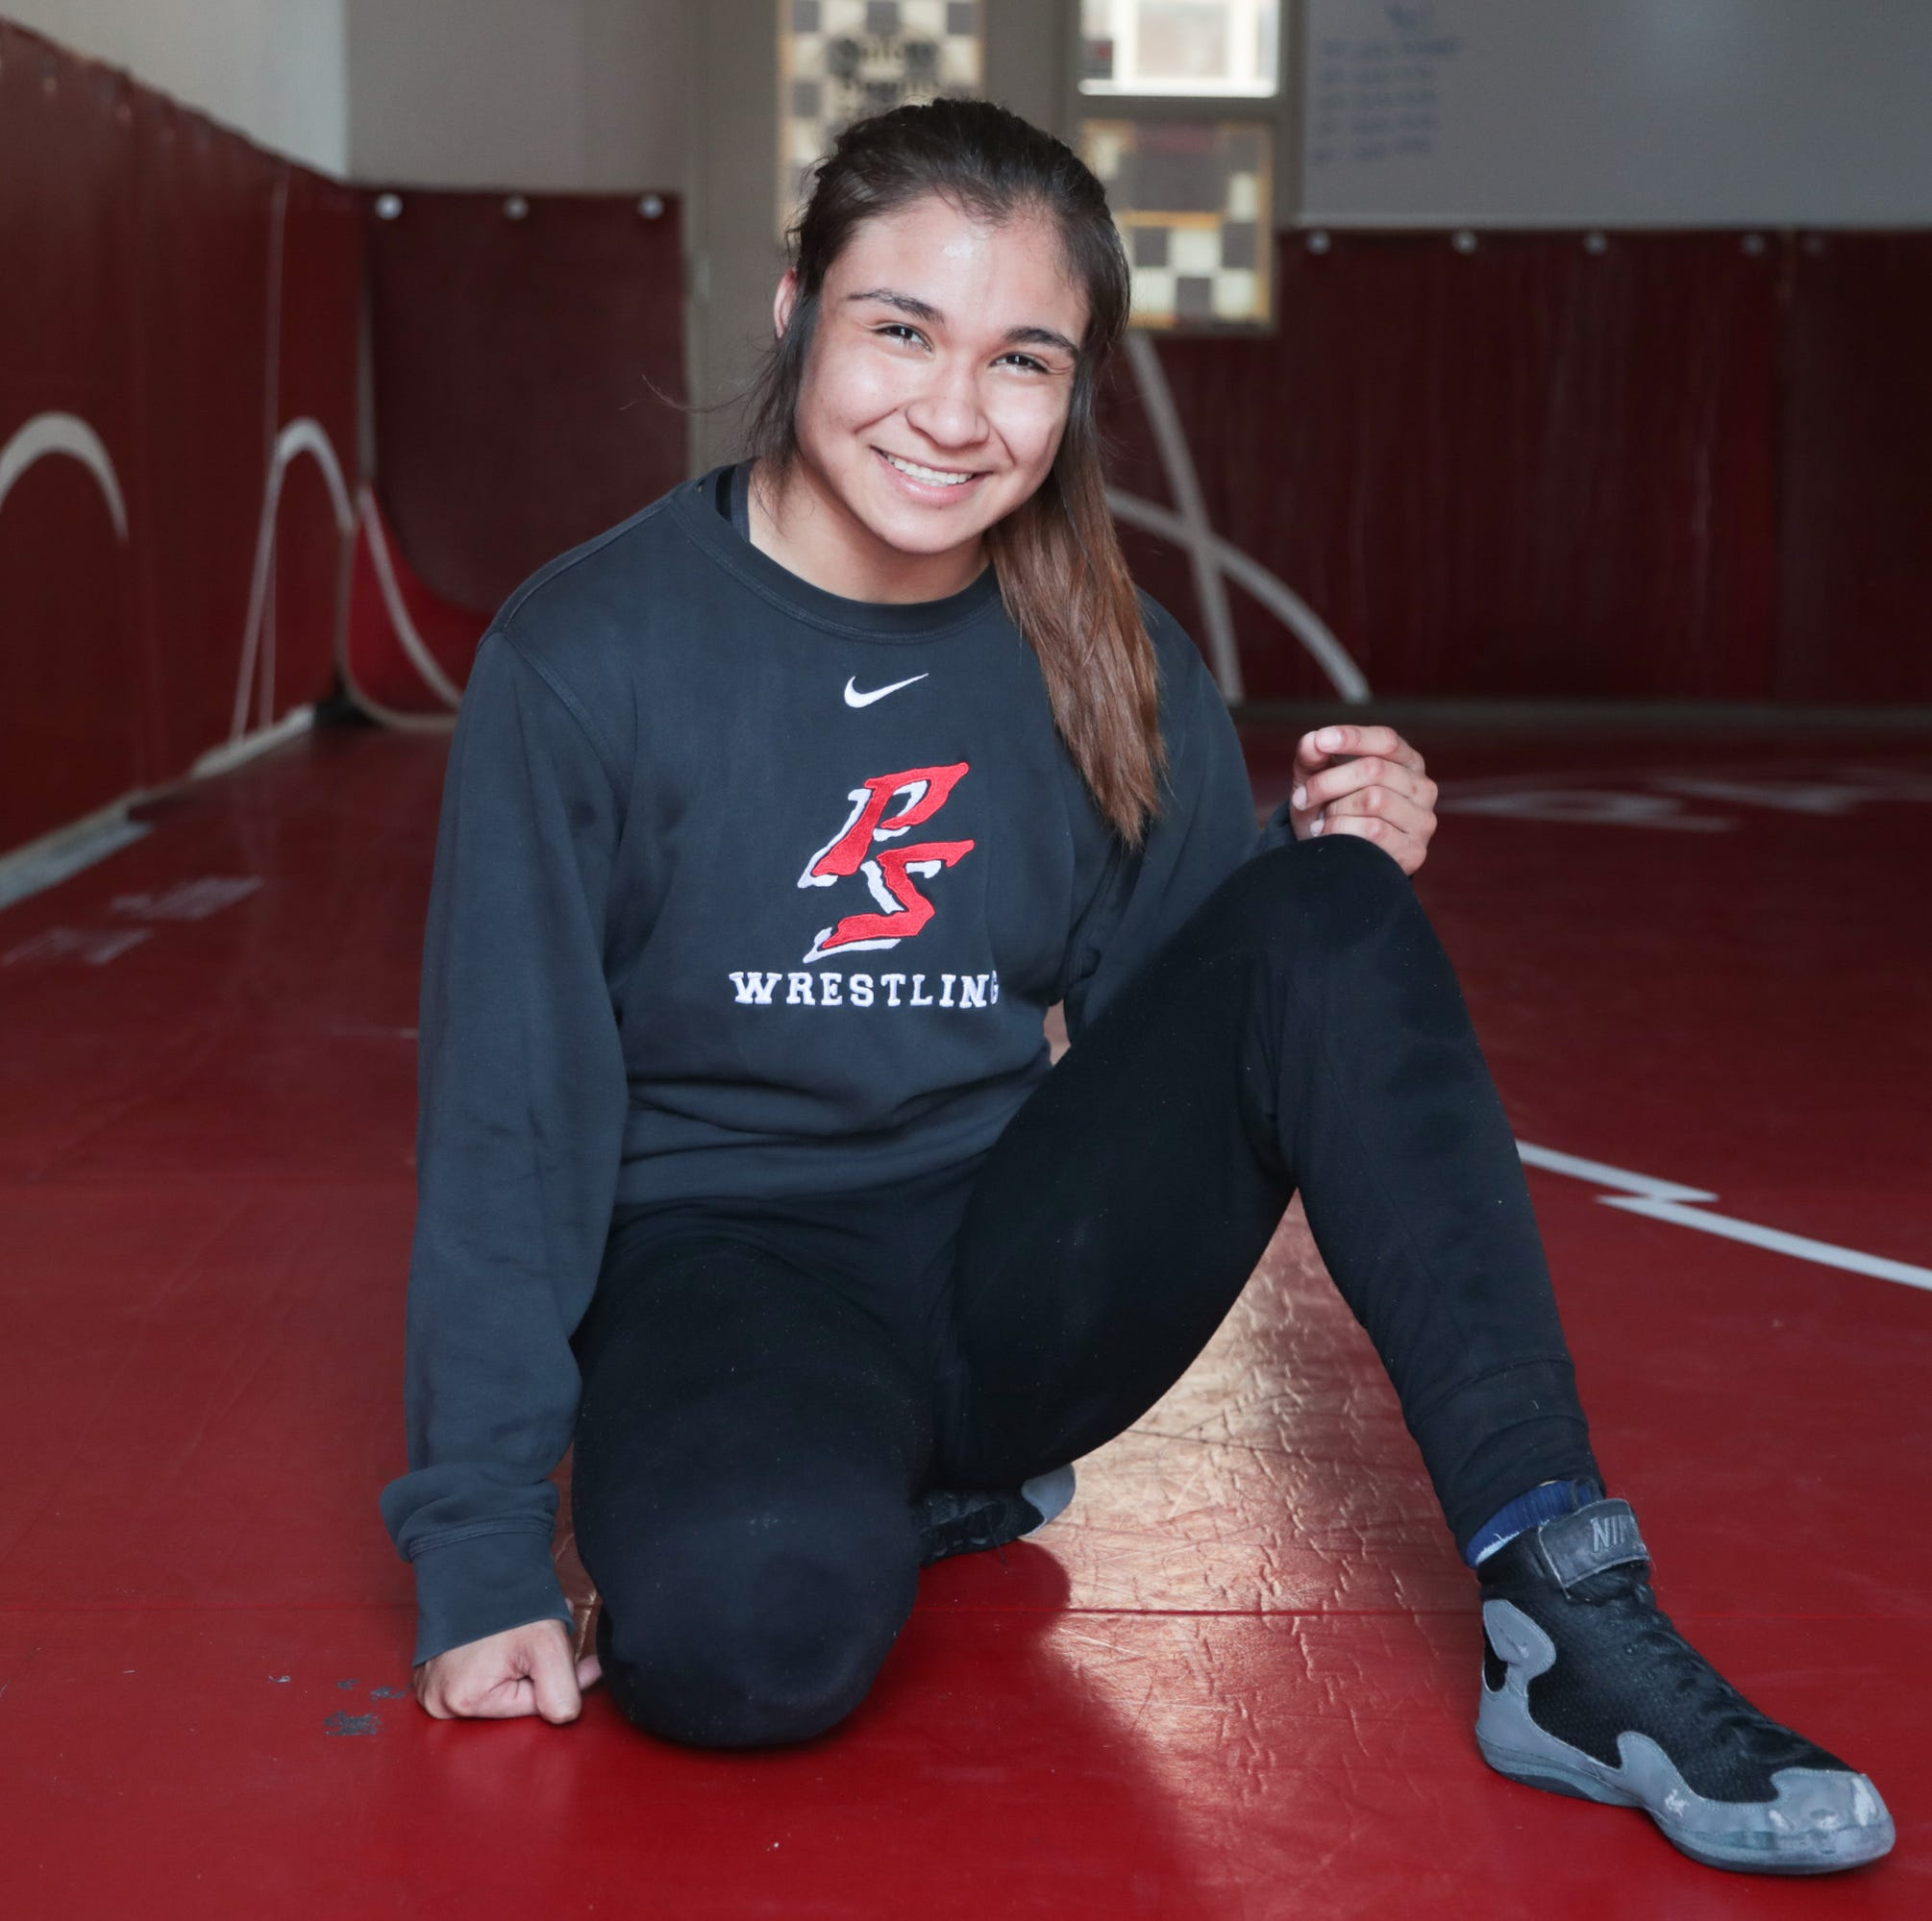 Now on national stage, Palm Springs wrestler Cindy Zepeda has silenced all doubters